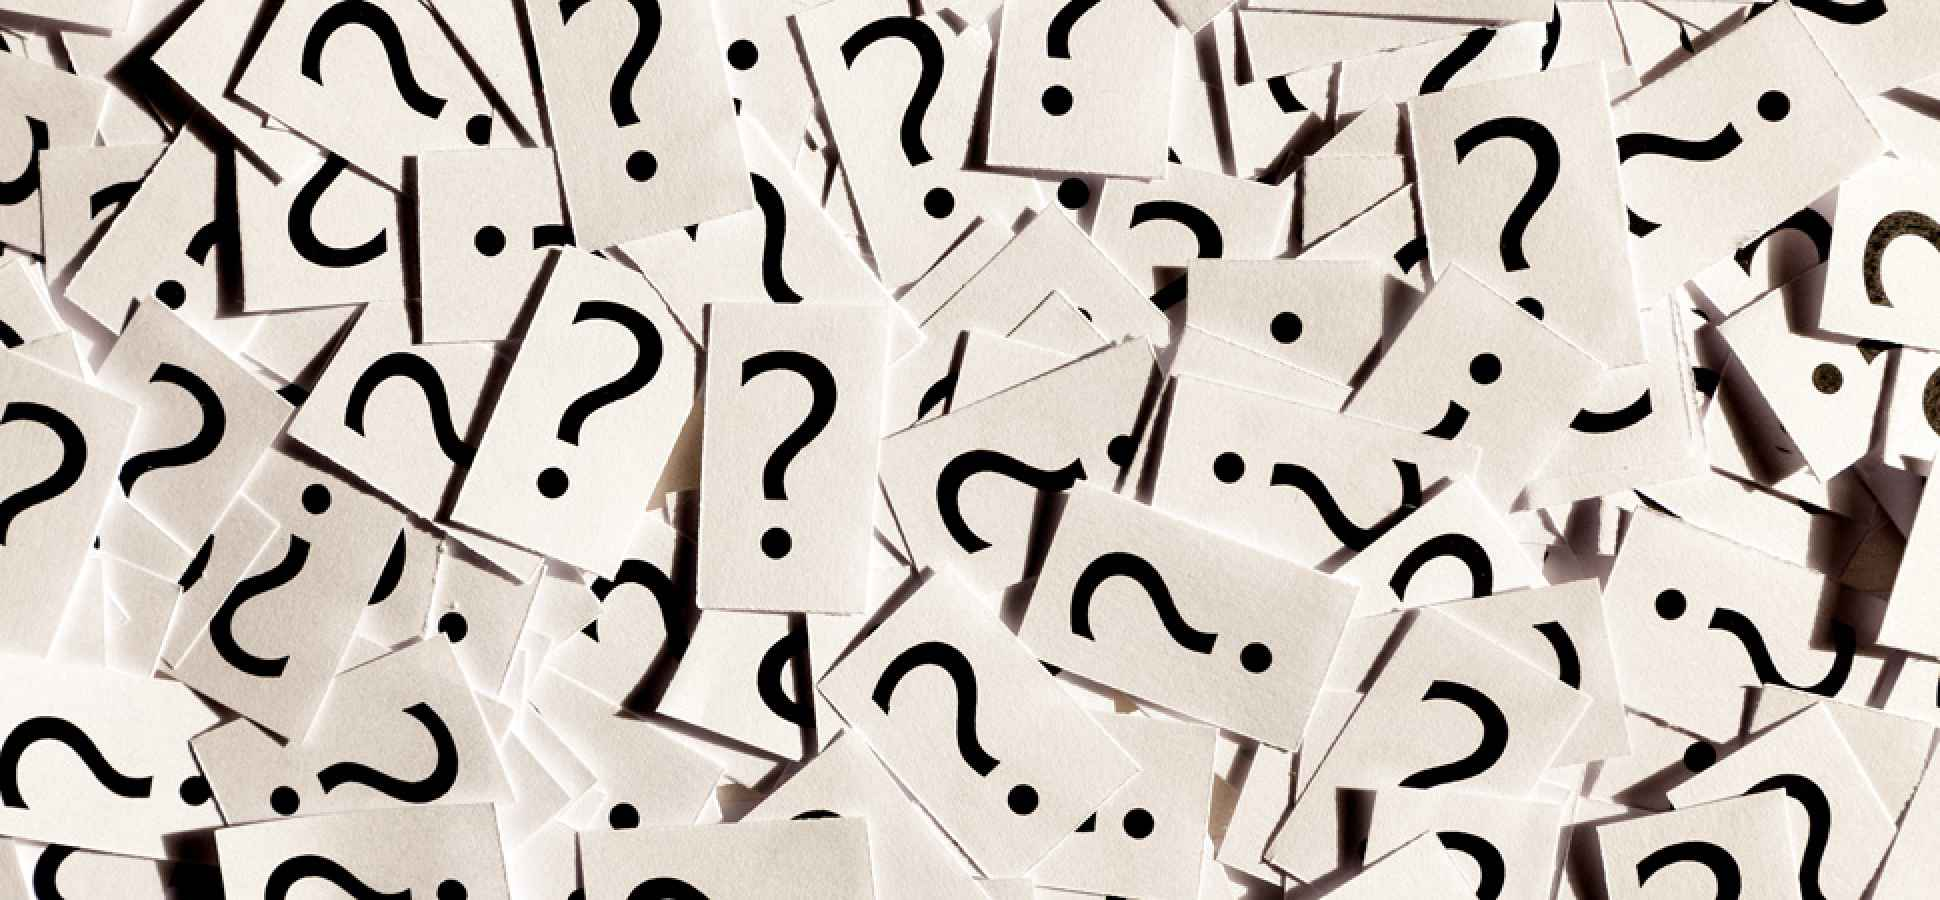 100 Great Questions Every Entrepreneur Should Ask